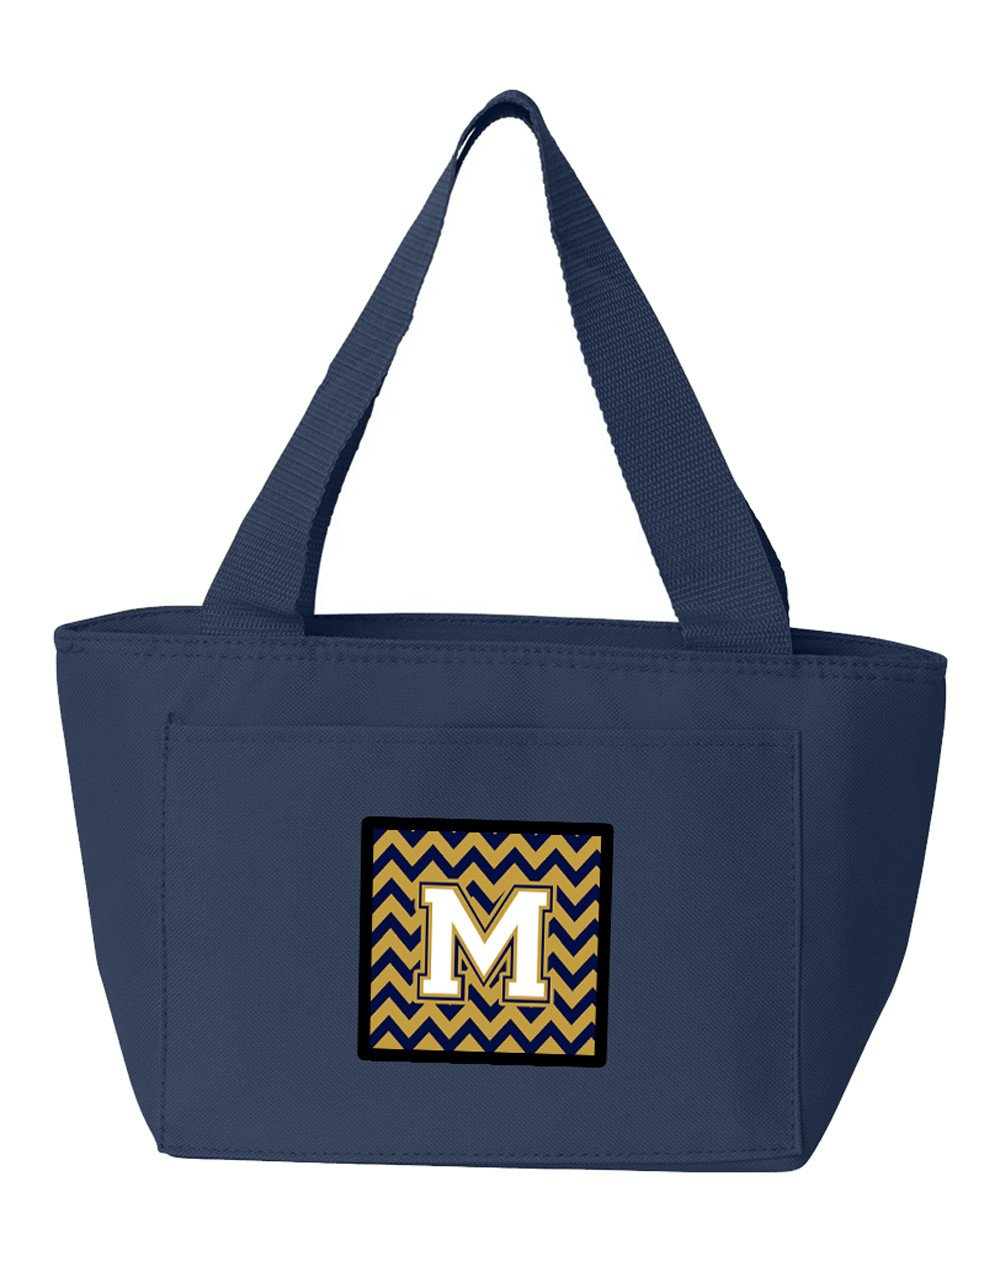 Letter M Chevron Navy Blue and Gold Lunch Bag CJ1057-MNA-8808 by Caroline's Treasures